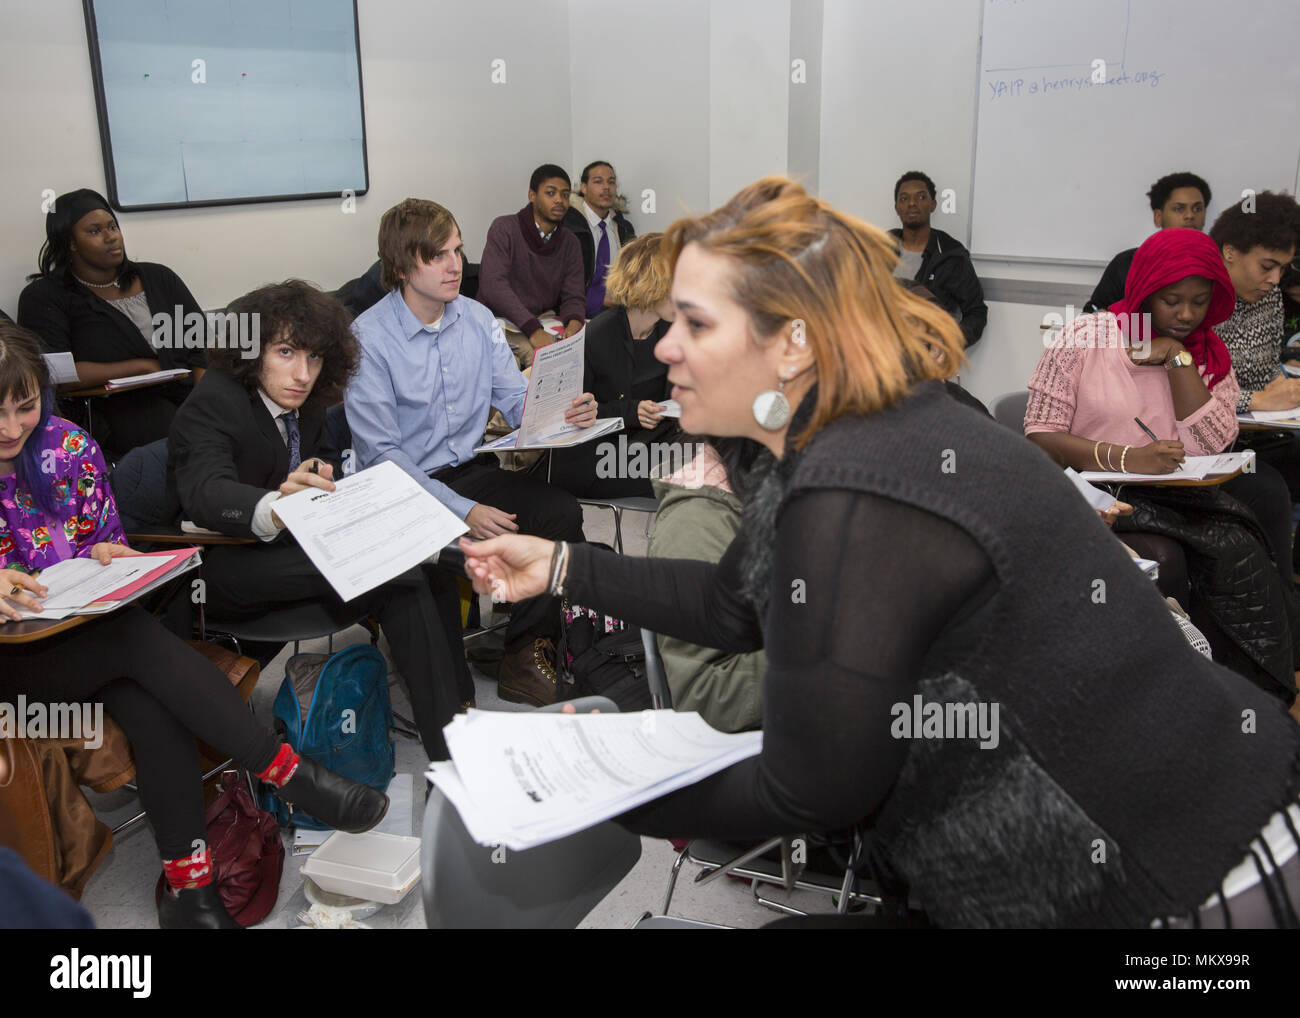 Special program for teens and young adults to learn financial literacy complete high school GED programs and prepare for working in the world today. L - Stock Image